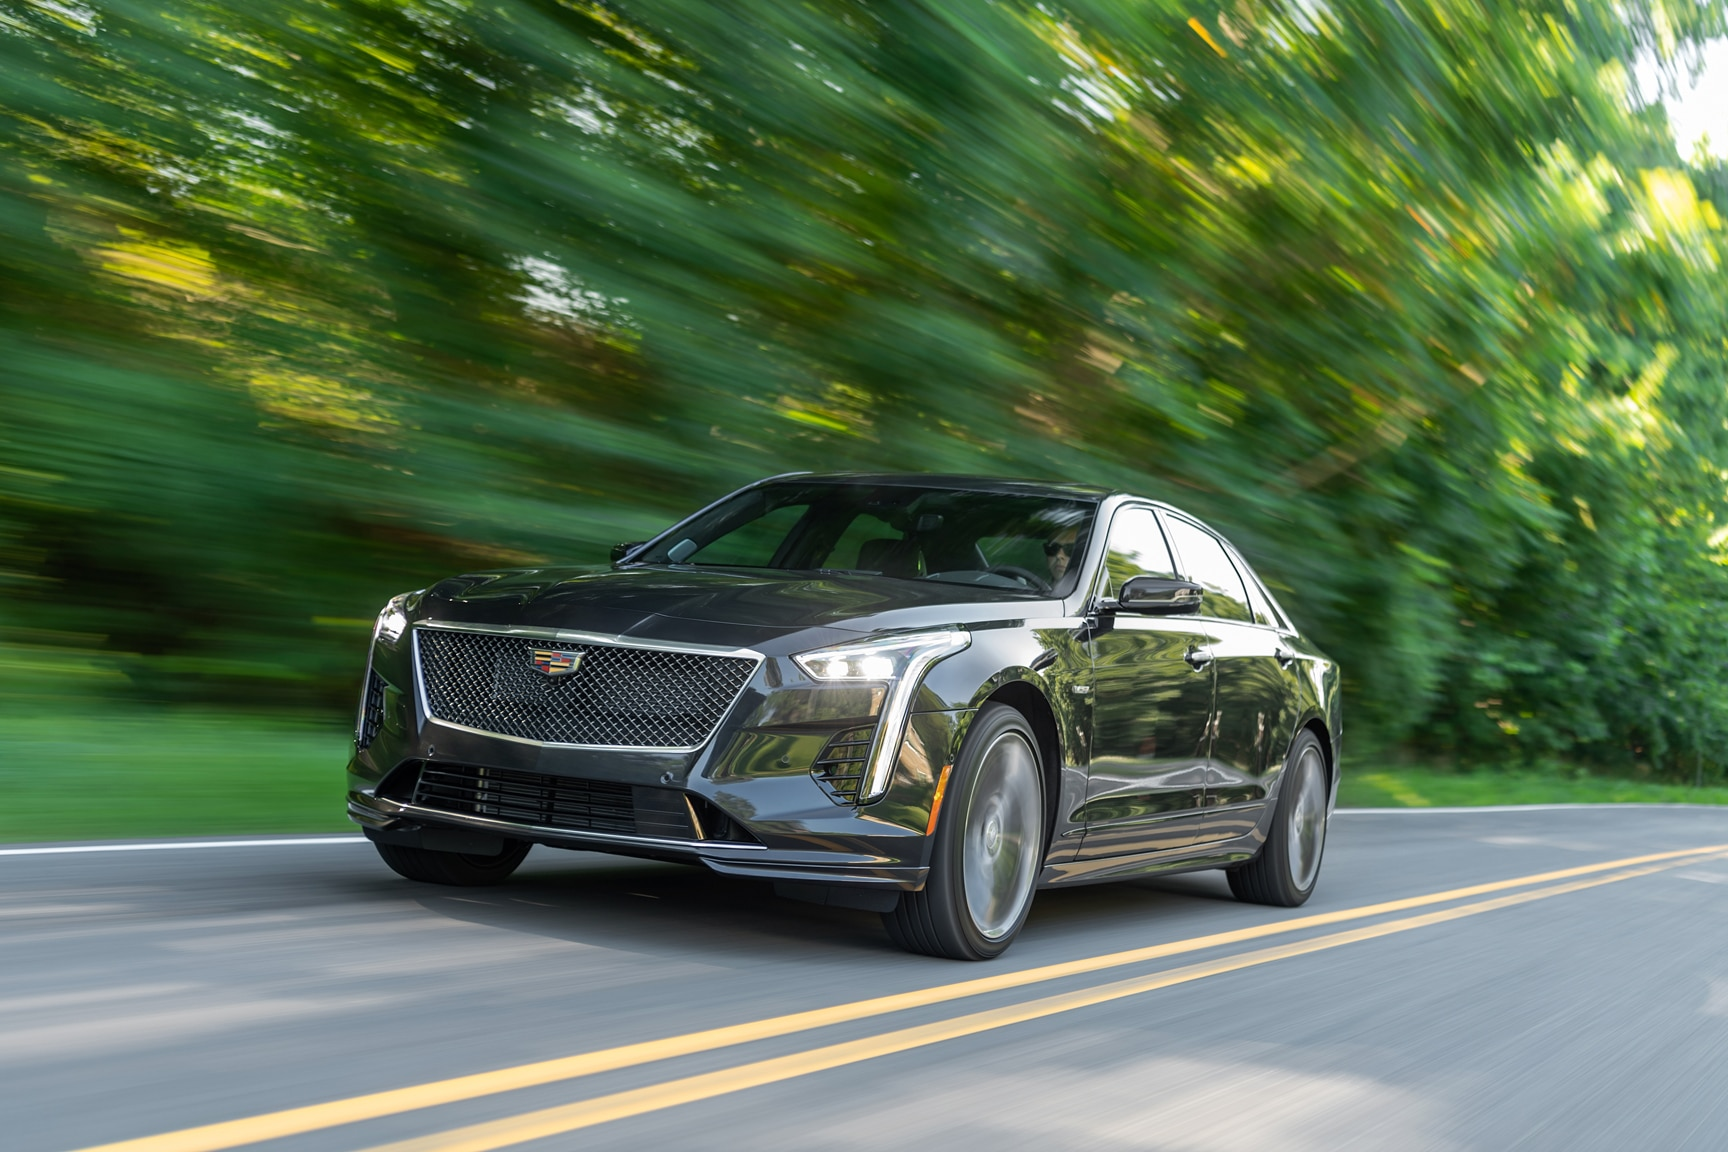 2019 Cadillac CT6-V First Drive Review: Positively Sublime | Automobile Magazine